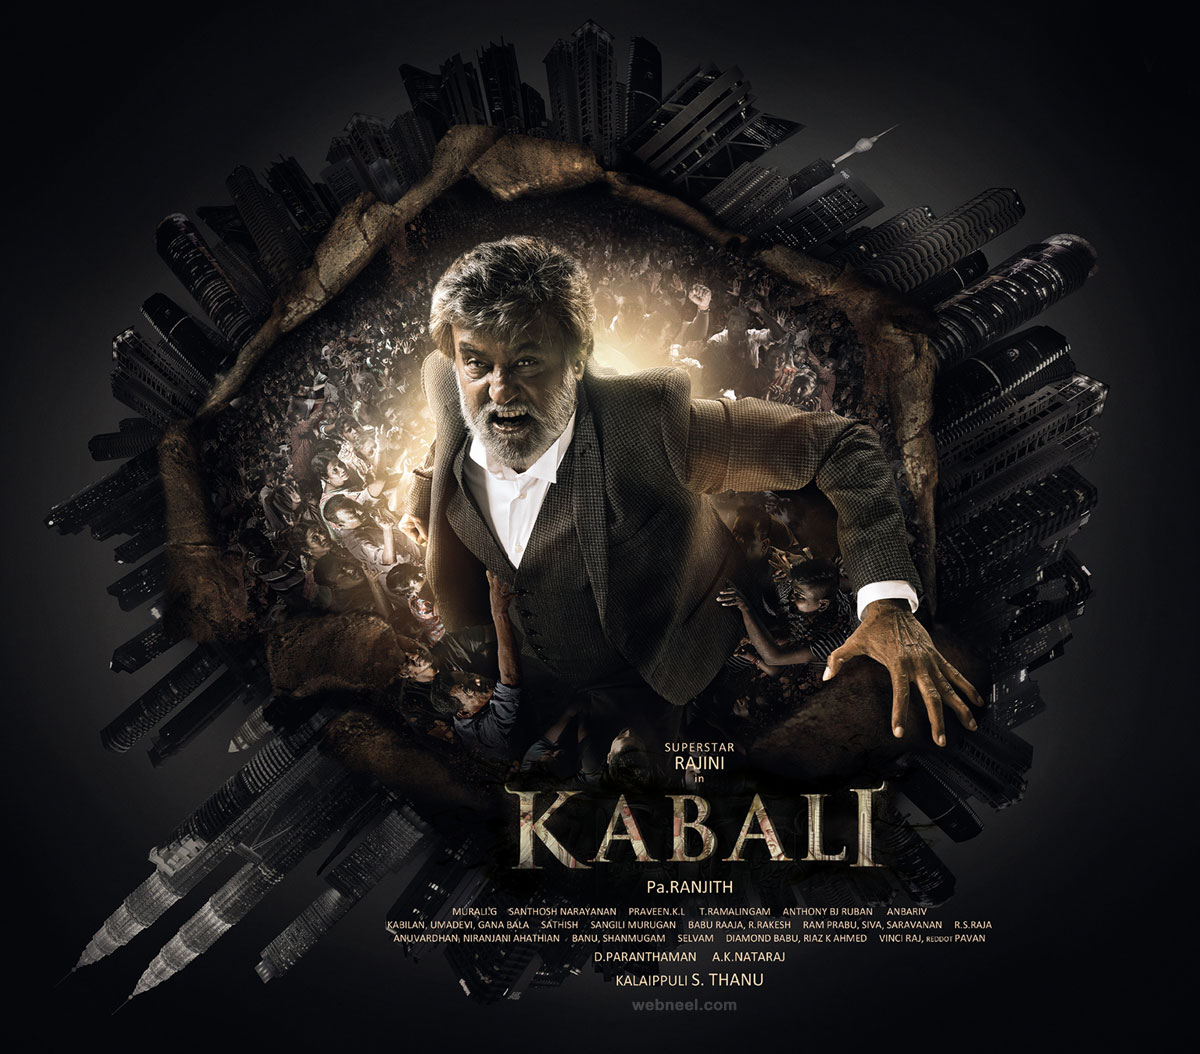 india movie poster design tamil kabali